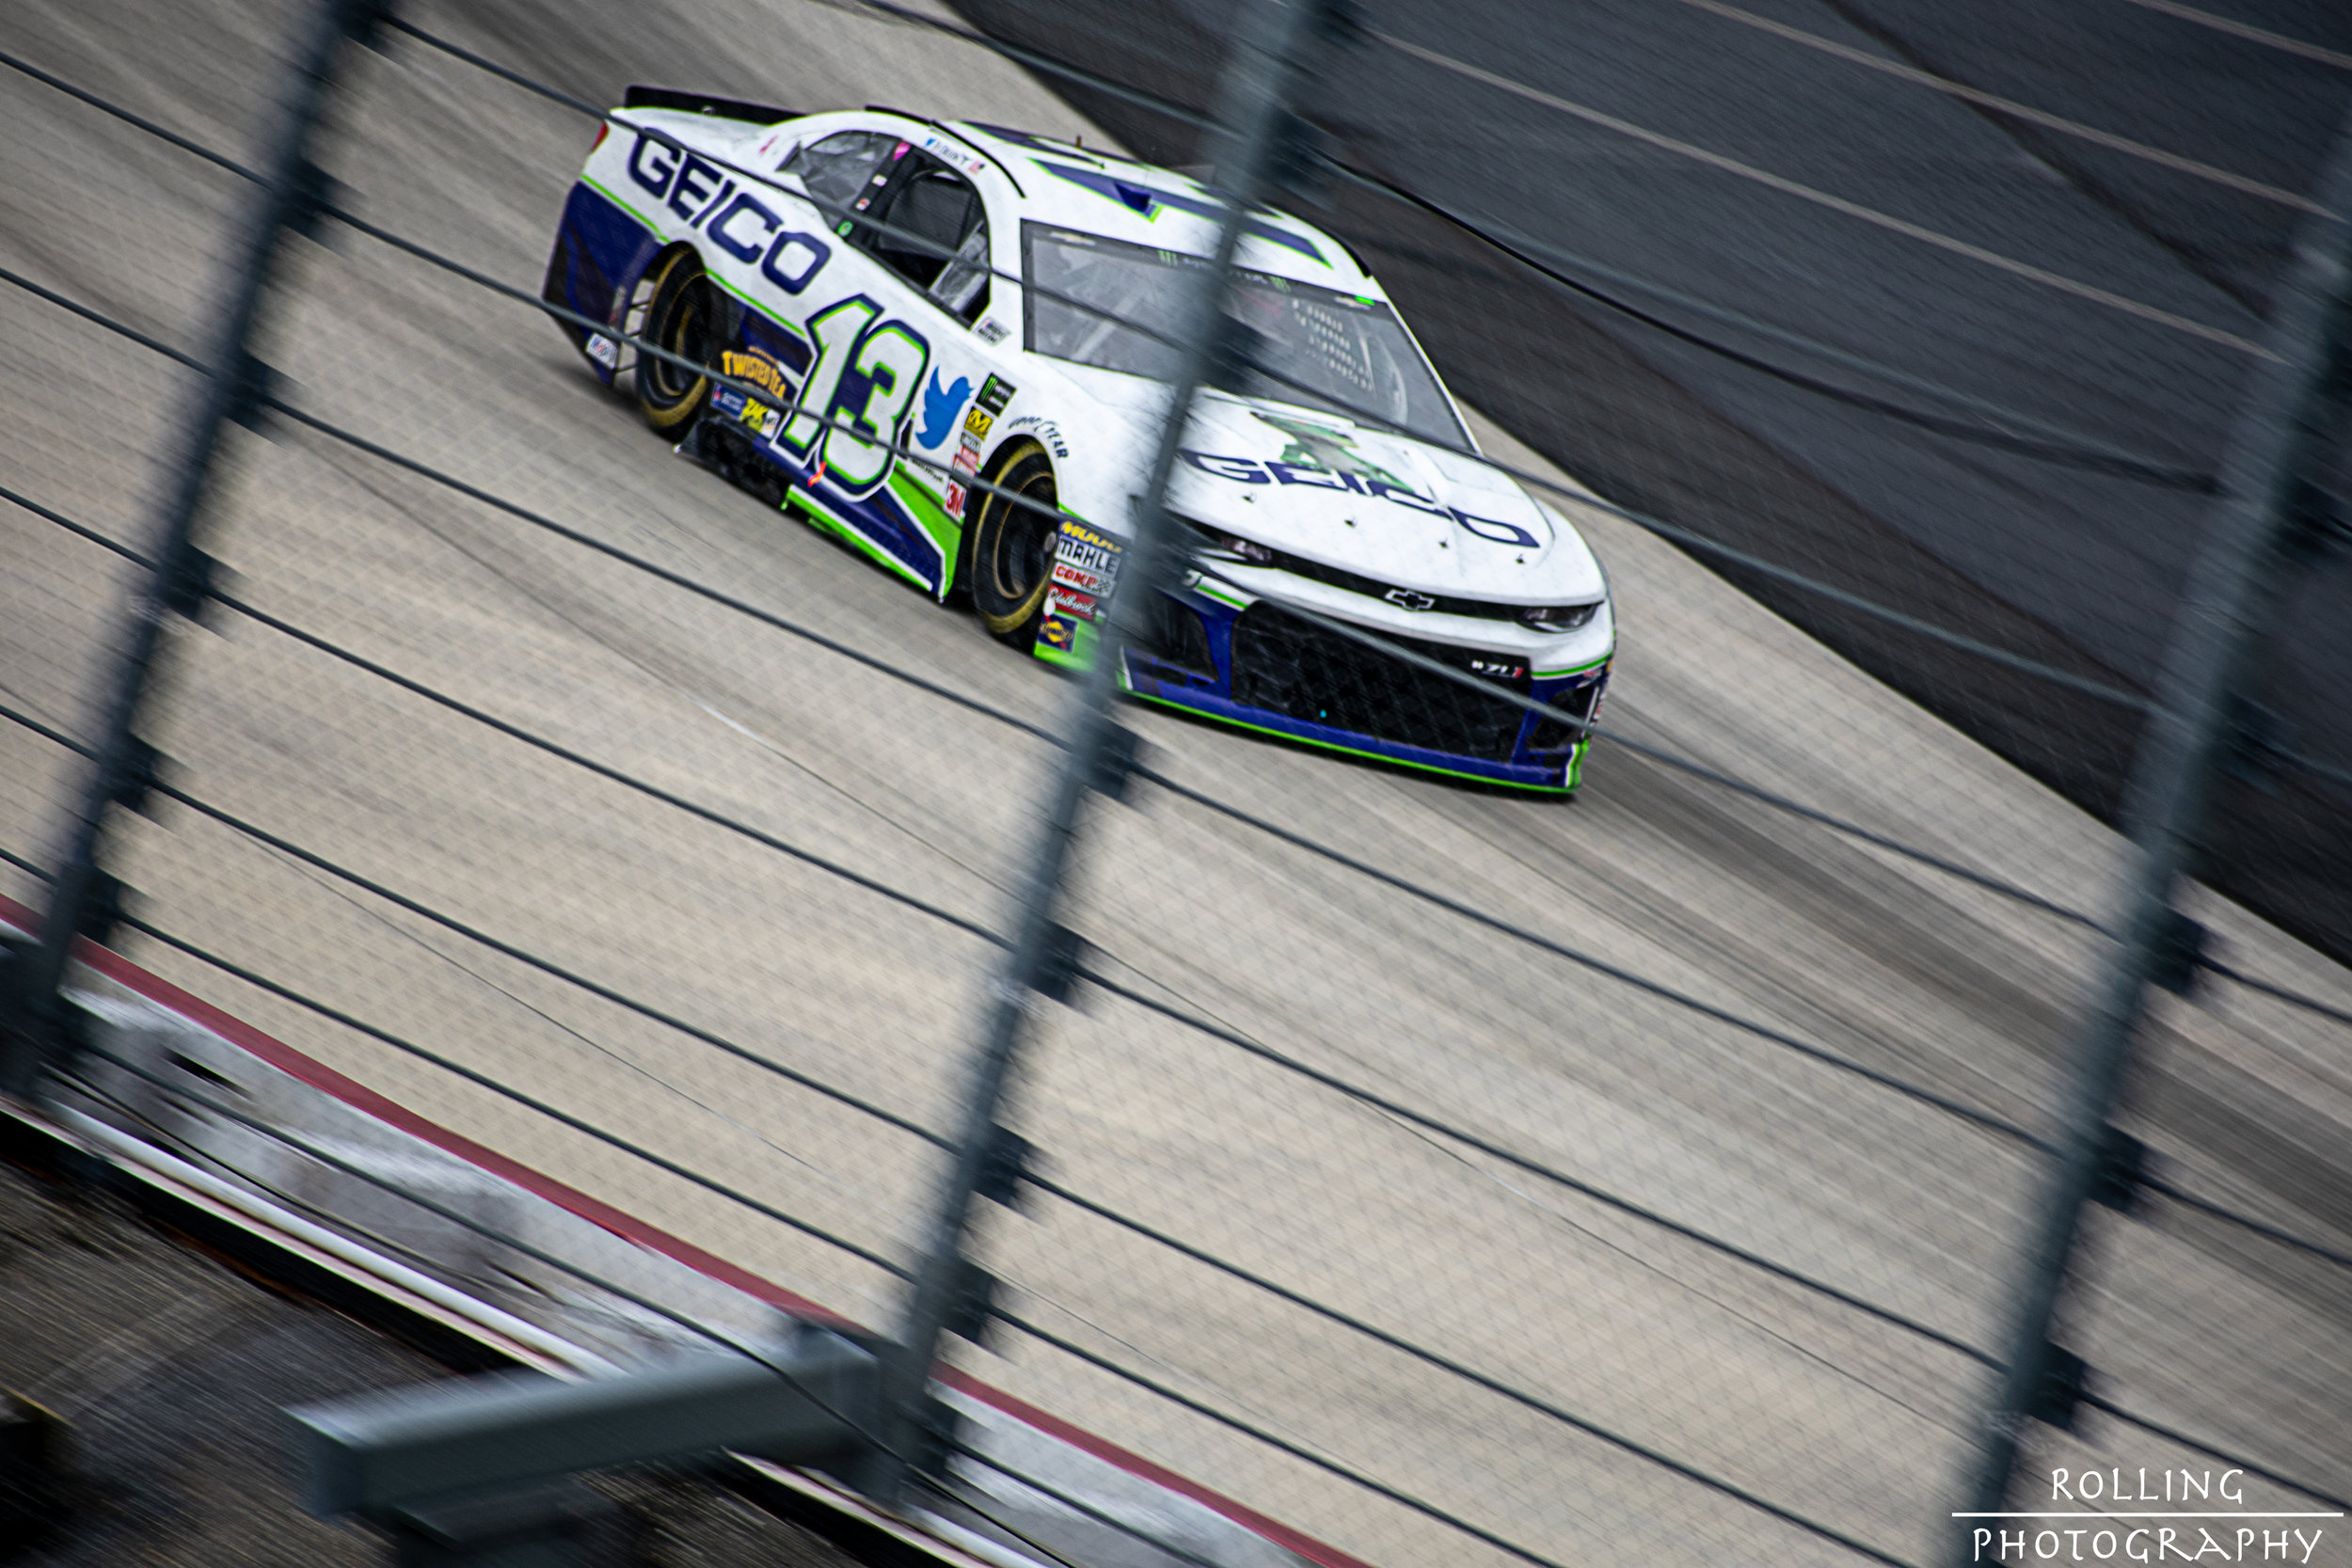 #13 Ty Dillon out out of Dover 4 onto the grandstand straight ISO 100, 70-300mm lens (300mm), f / 6.3 Shutter Speed 1/160